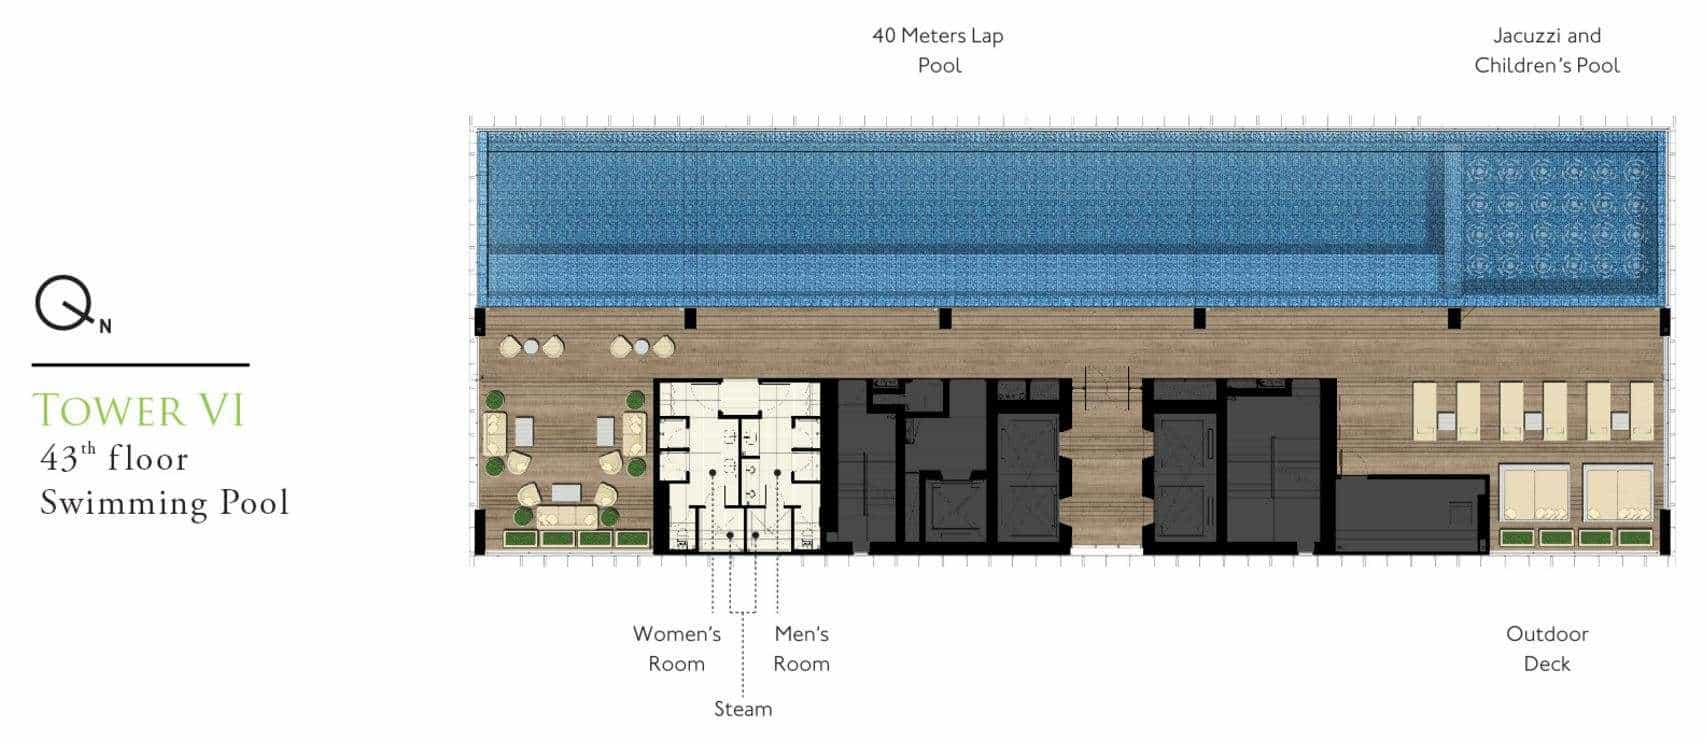 park-24-bangkok-floorplan-level40-swimmingpool